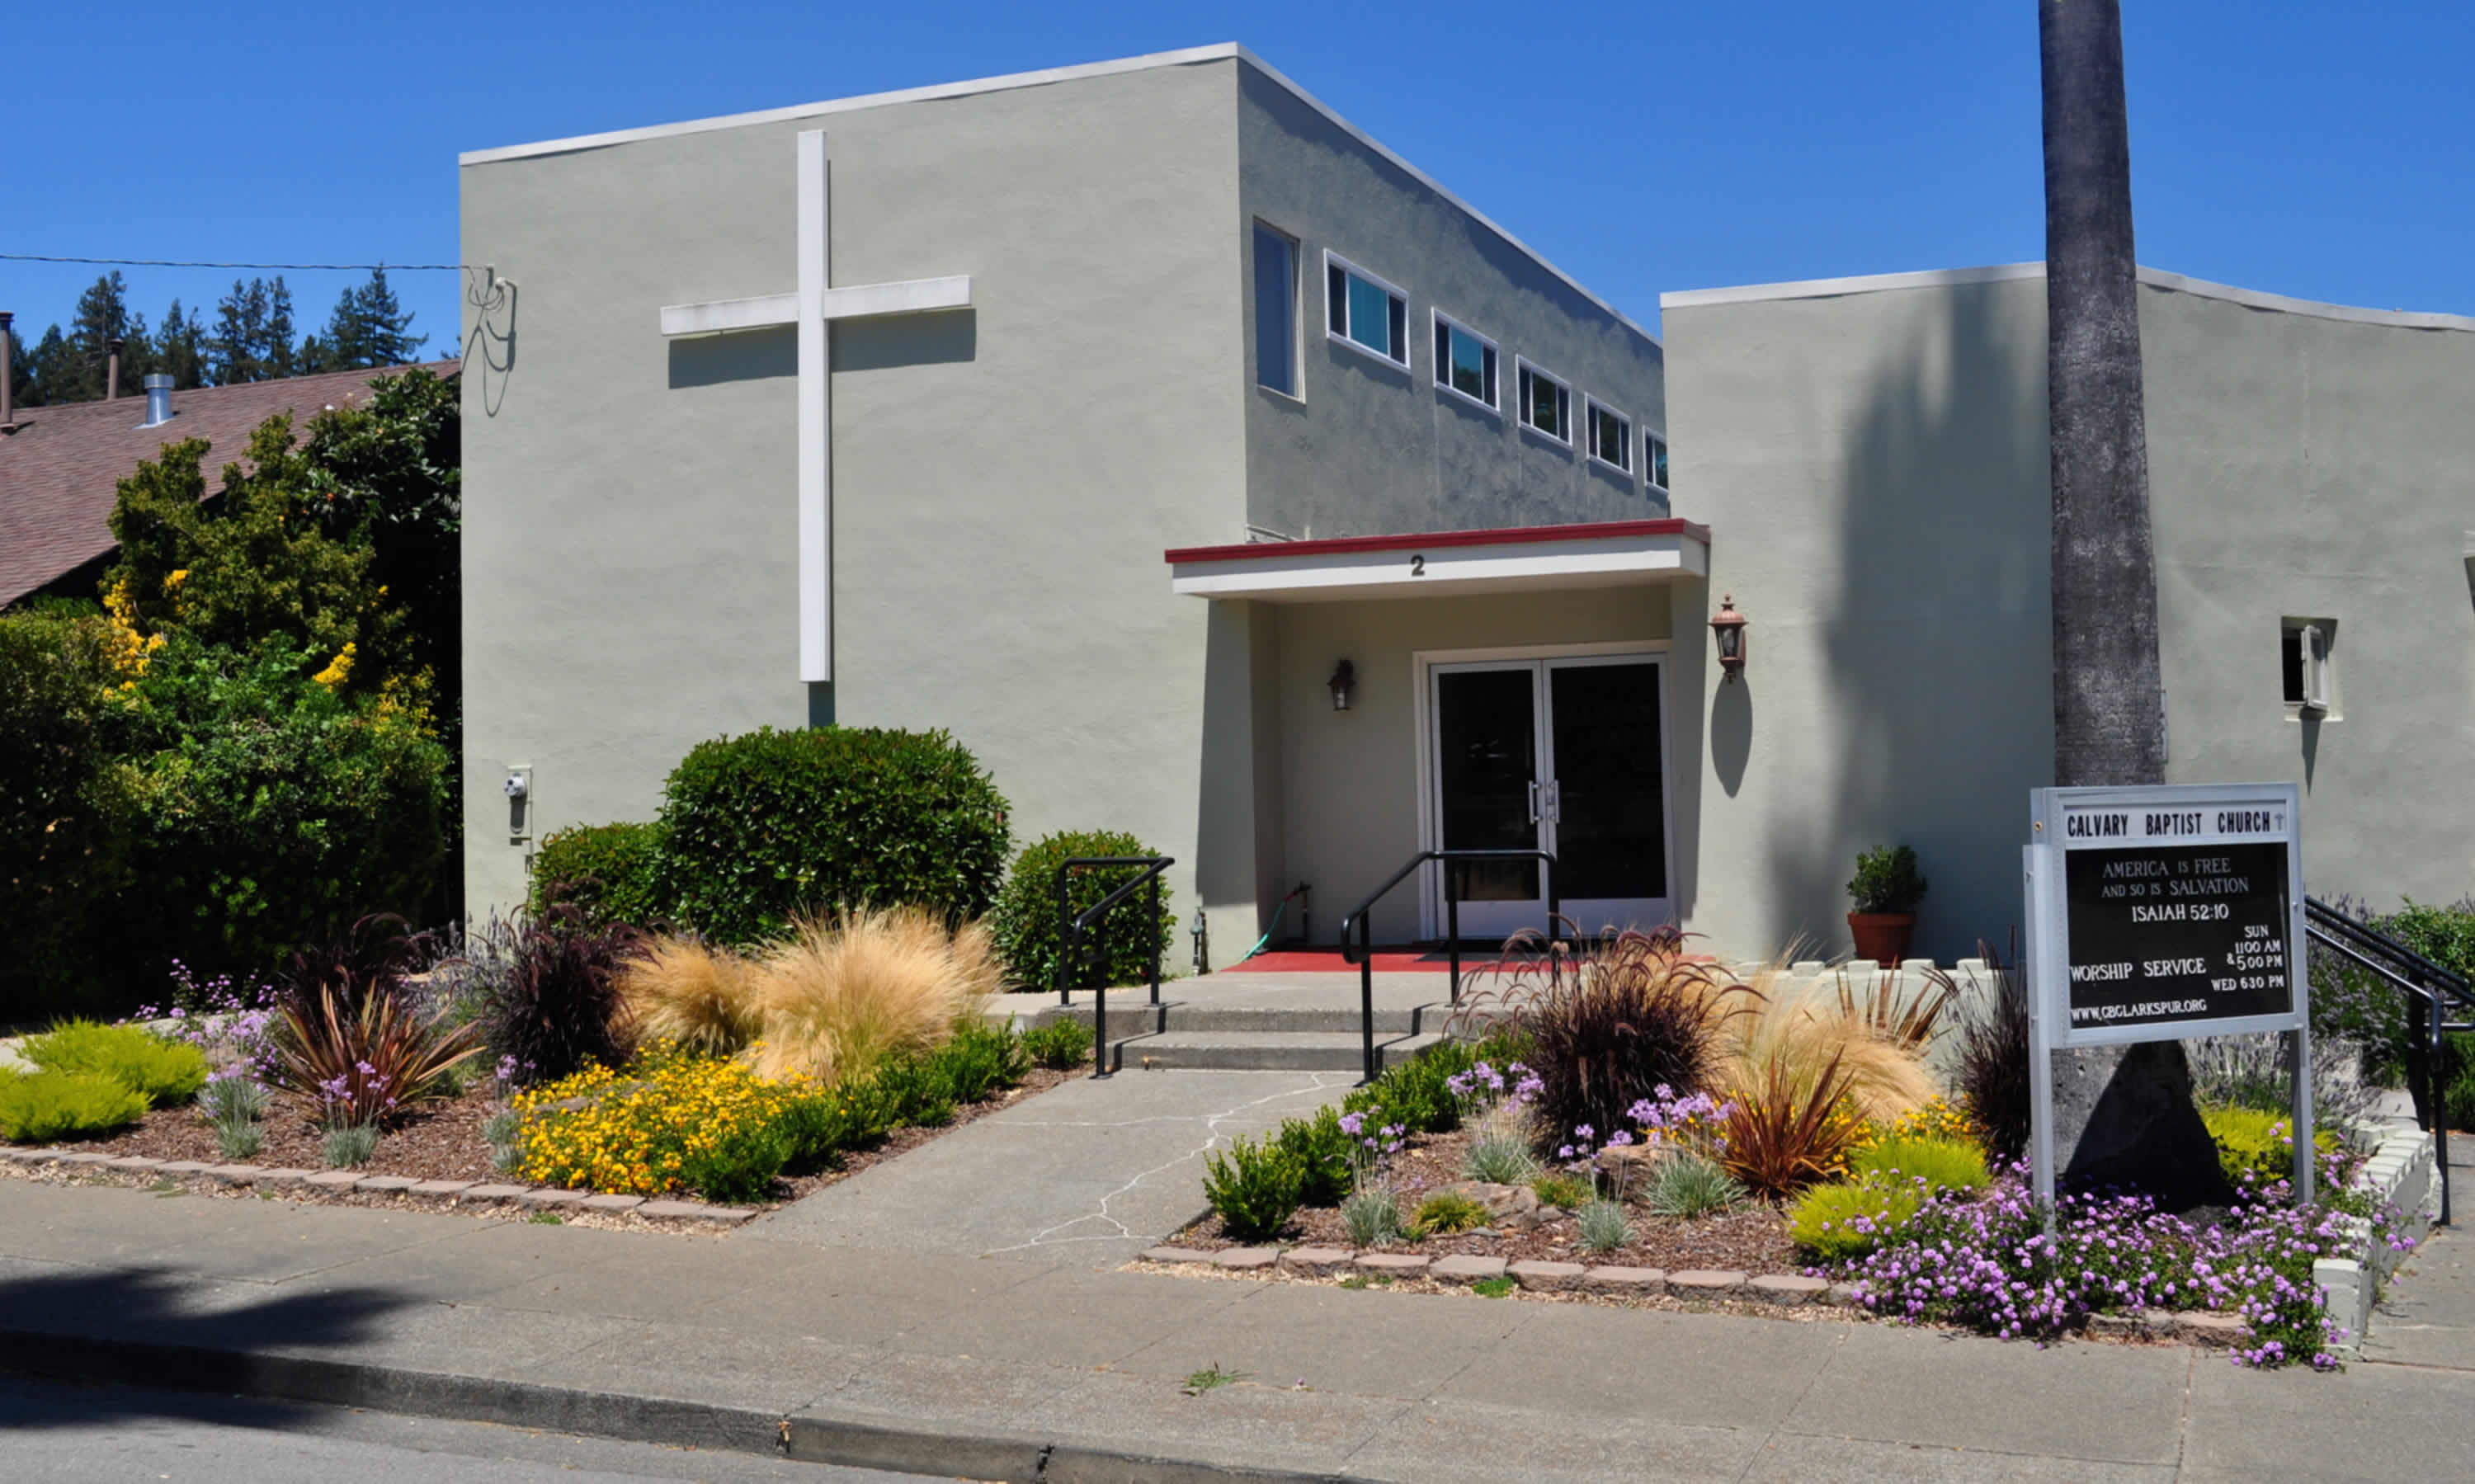 About Calvary Baptist Church of Larkspur